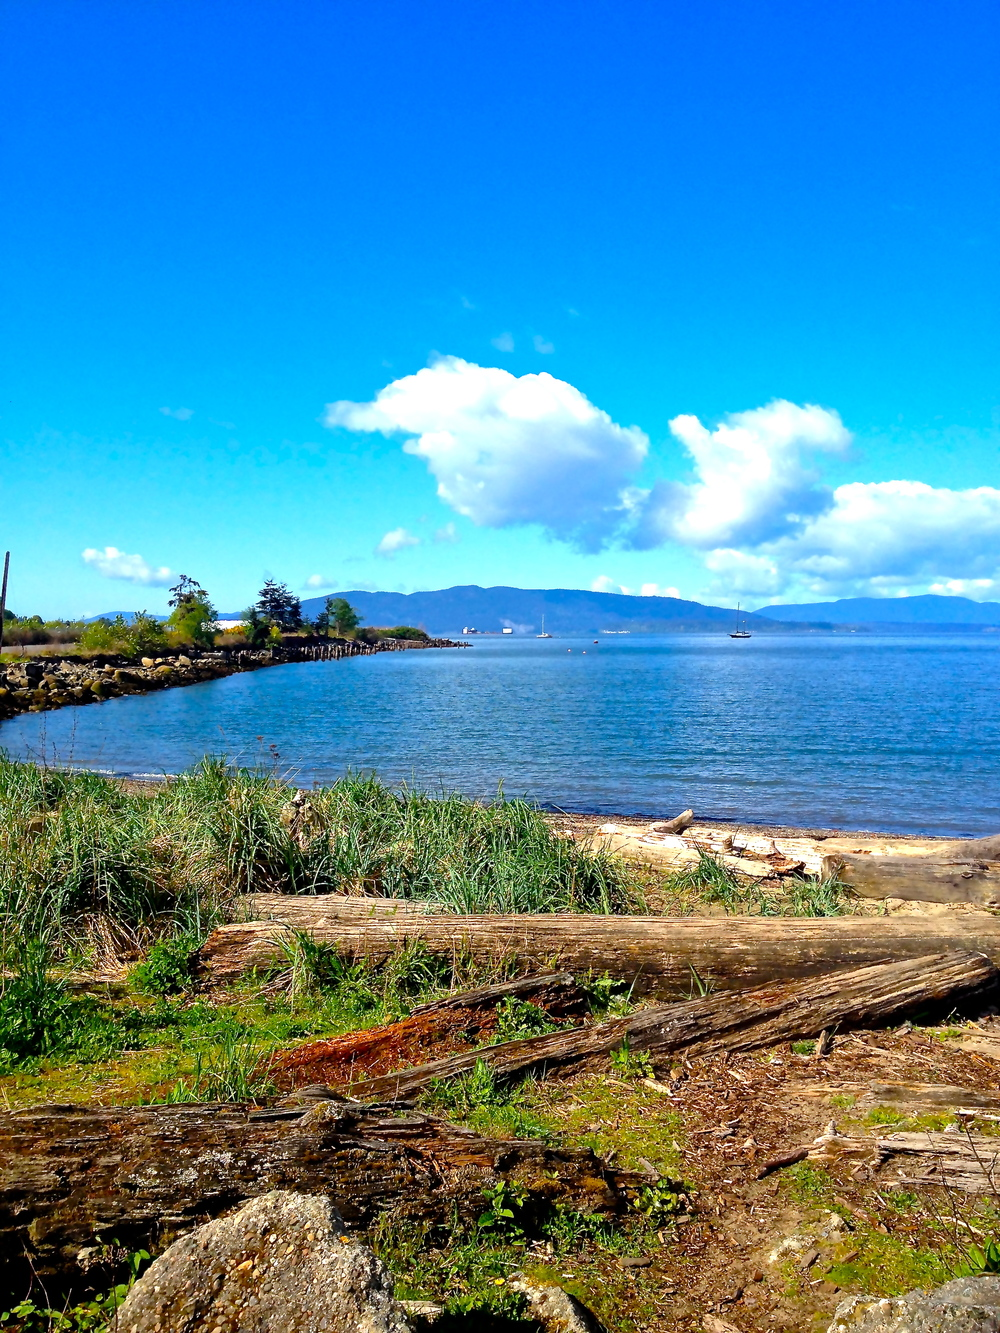 Spectacularly gorgeous day on Bellingham Bay